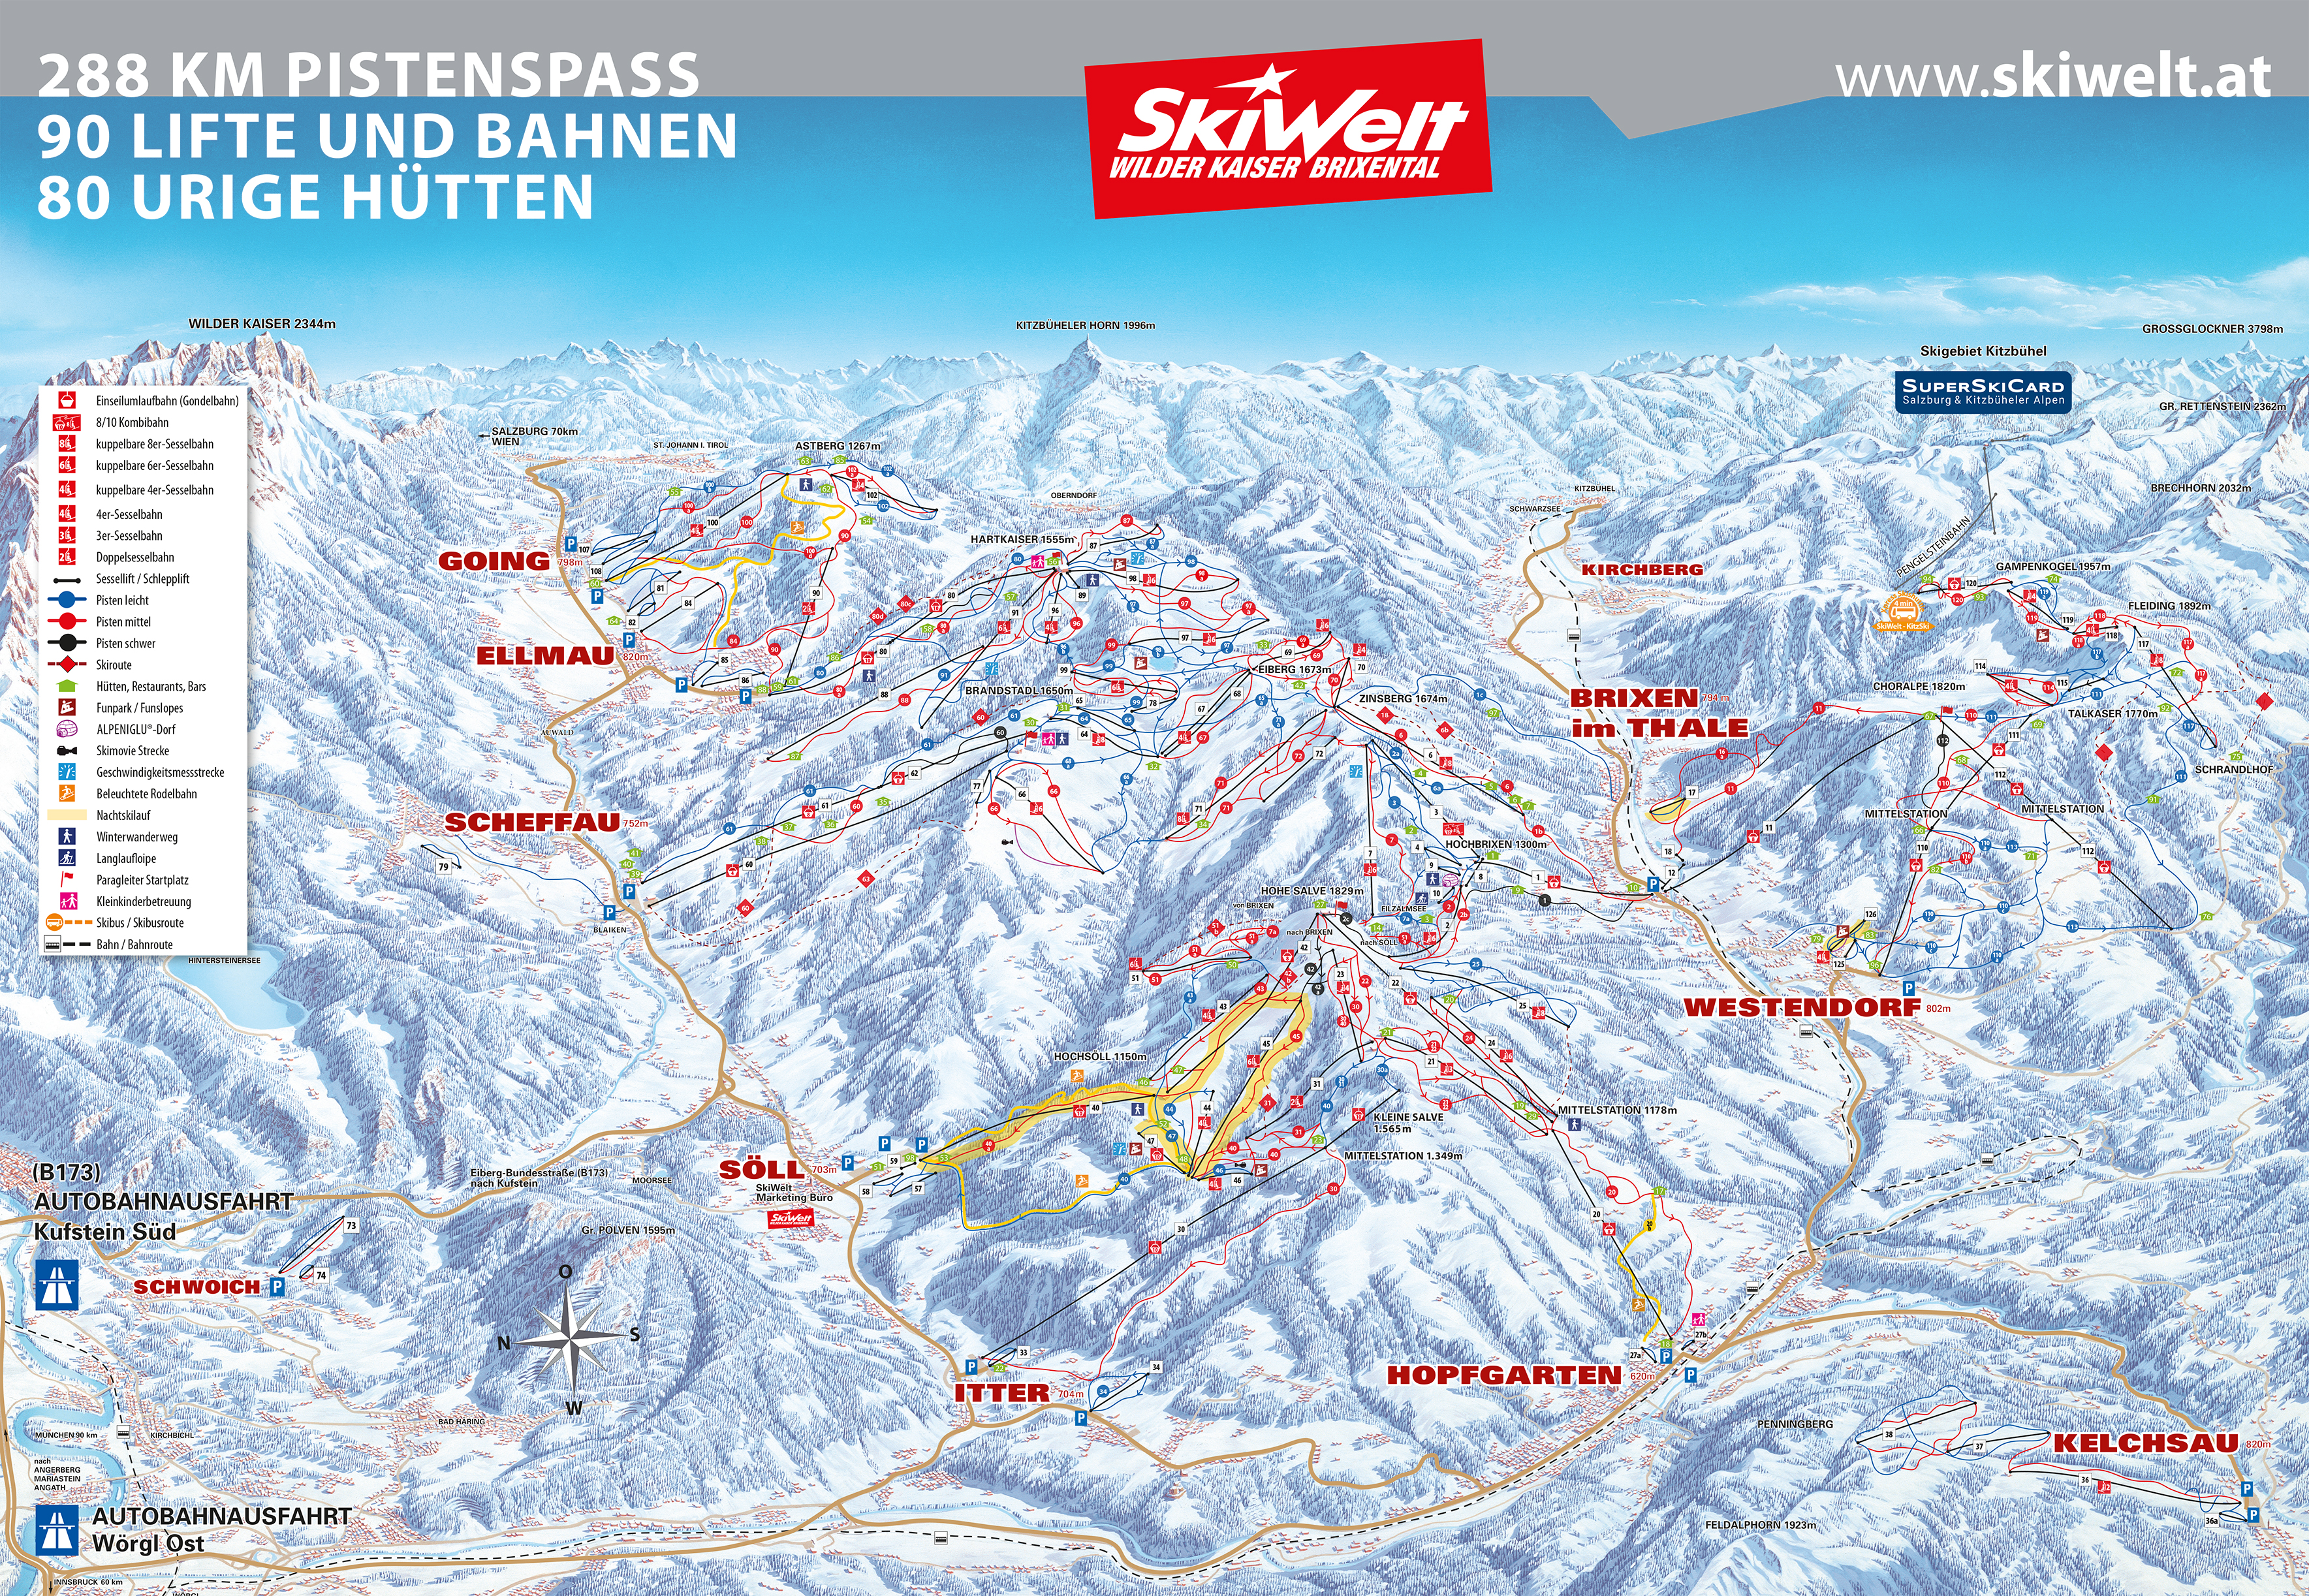 Hopfgarten Piste / Trail Map